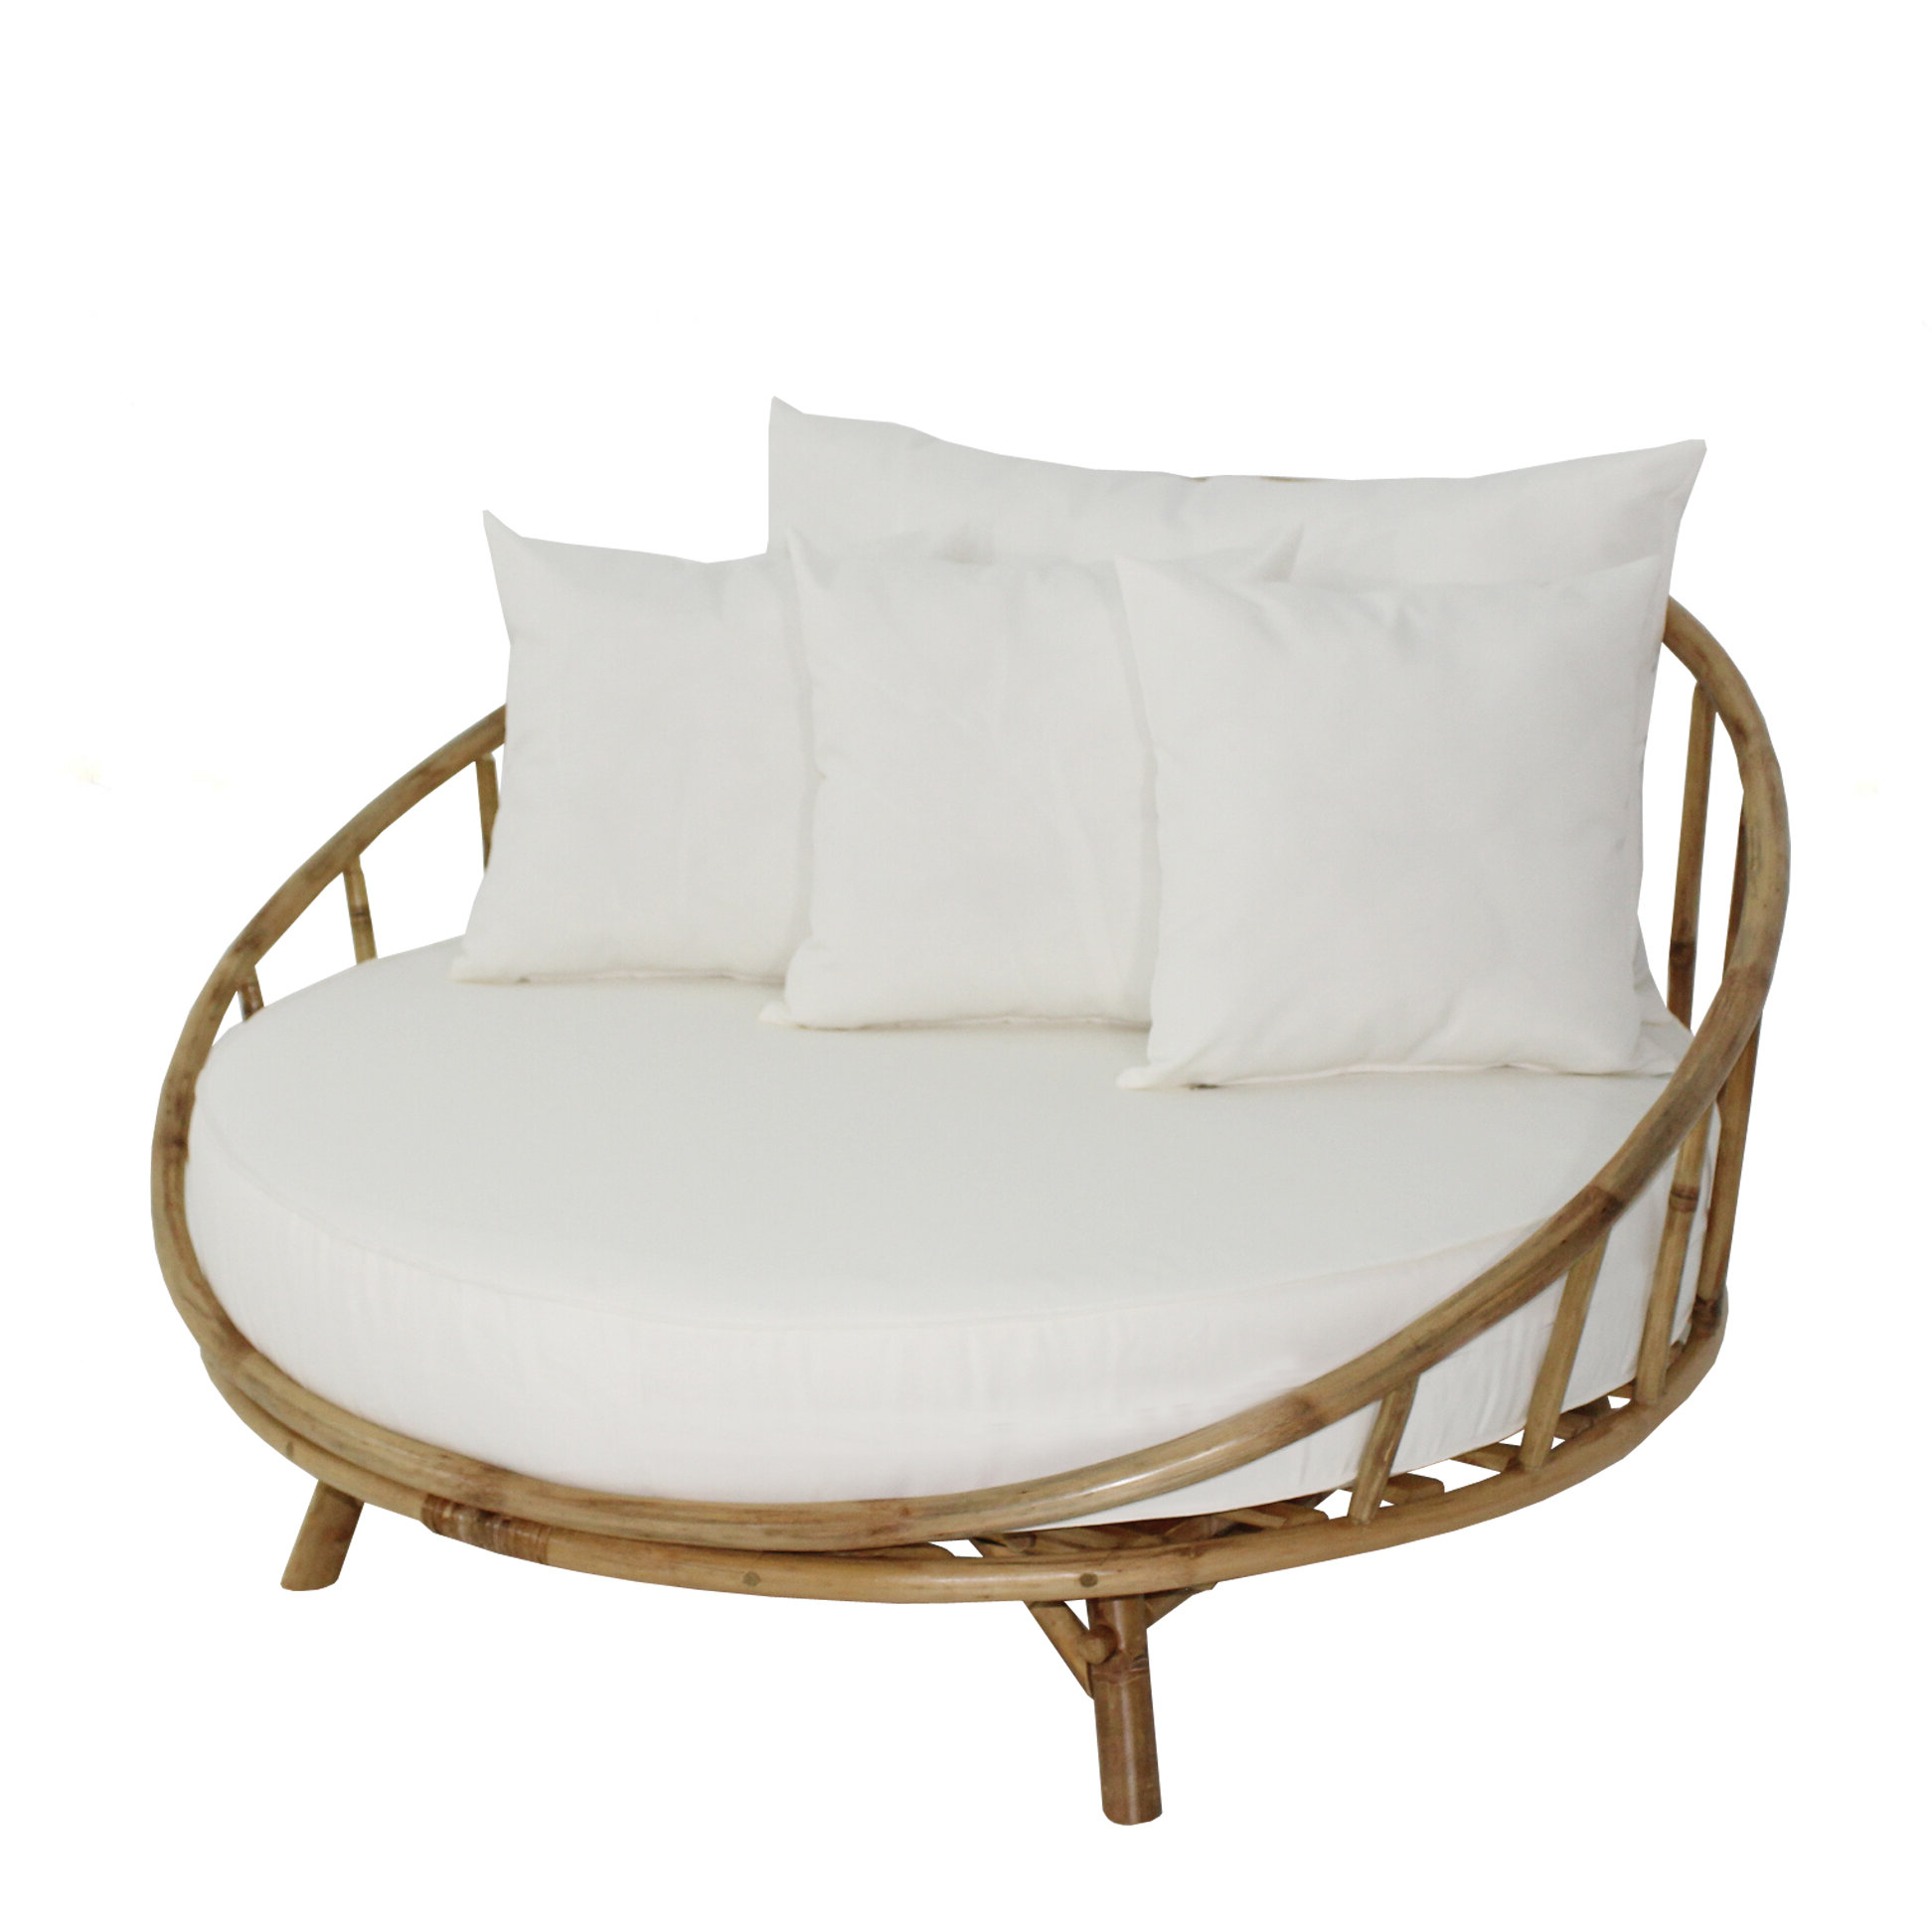 Olu Bamboo Large Round Patio Daybed With Cushions Regarding Recent Dowling Patio Daybeds With Cushion (View 20 of 25)